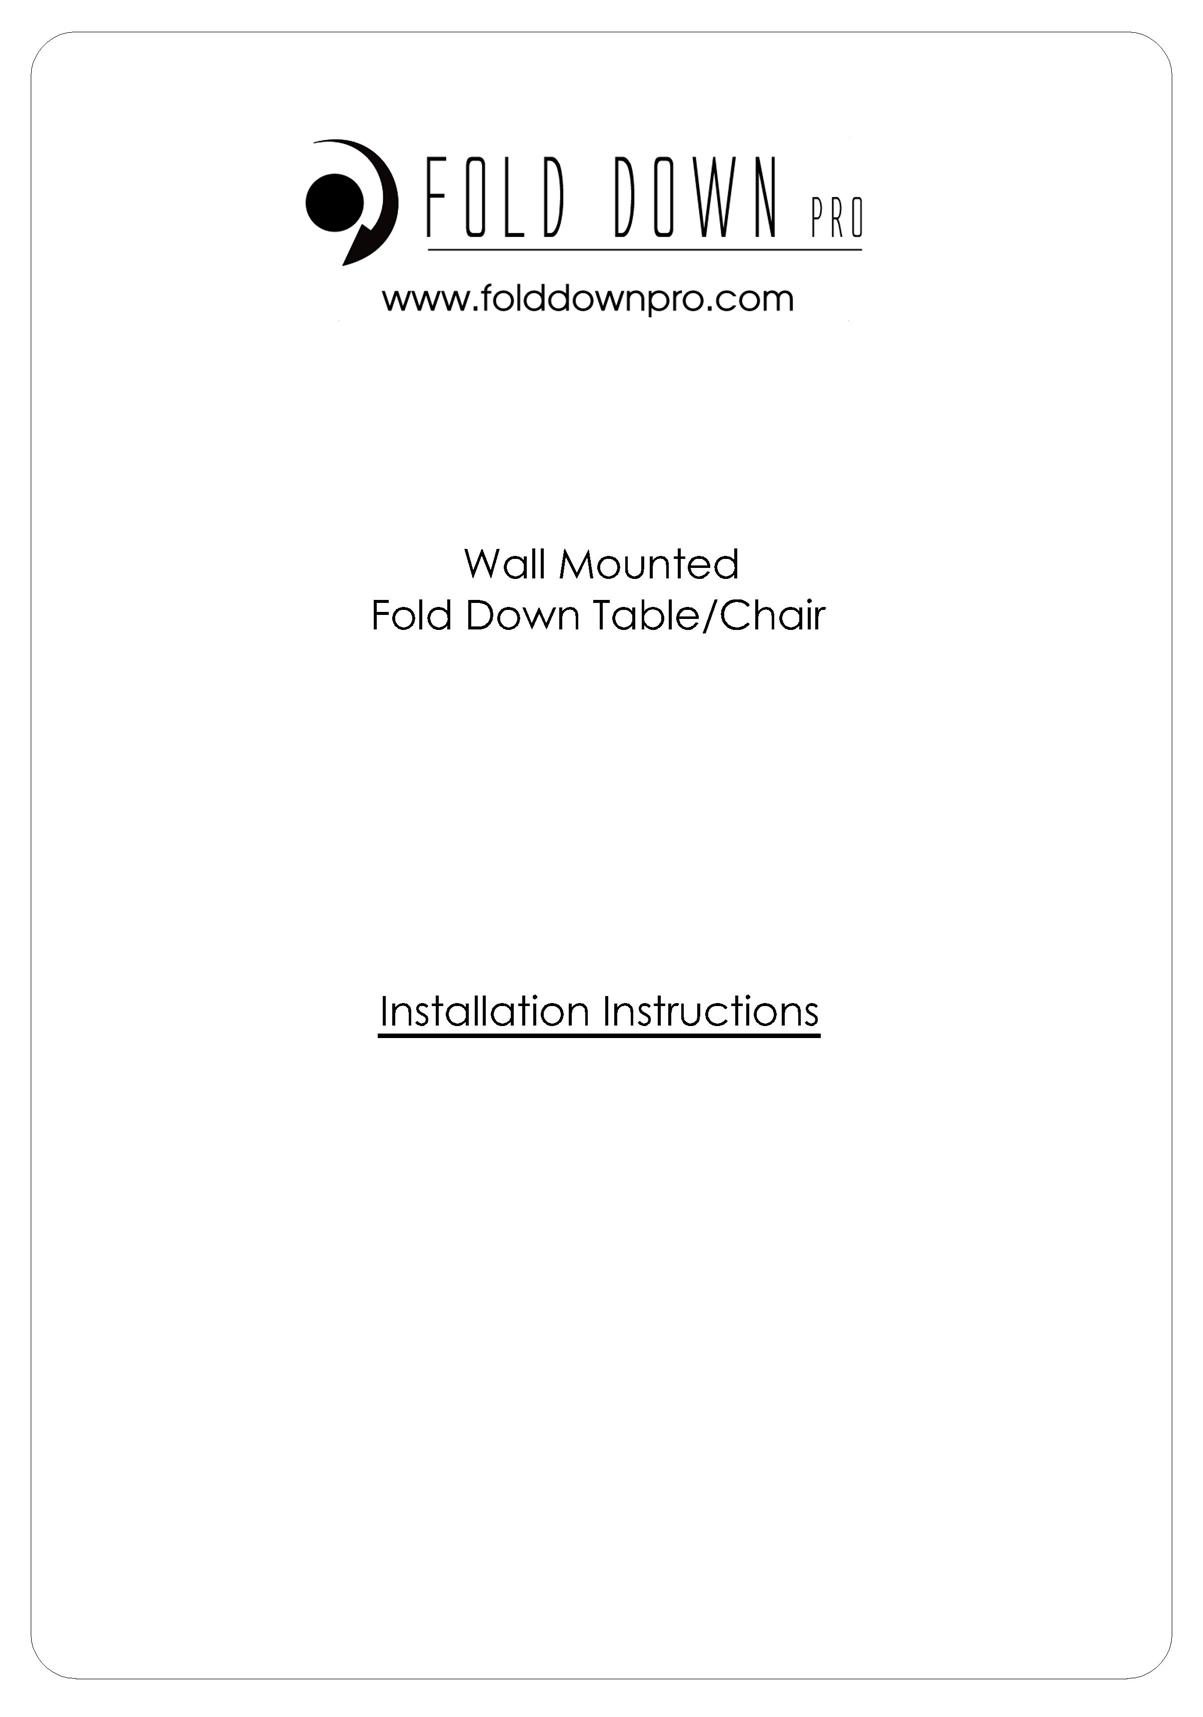 Wall Mounted Fold Down Table Chair Instructions Page 0